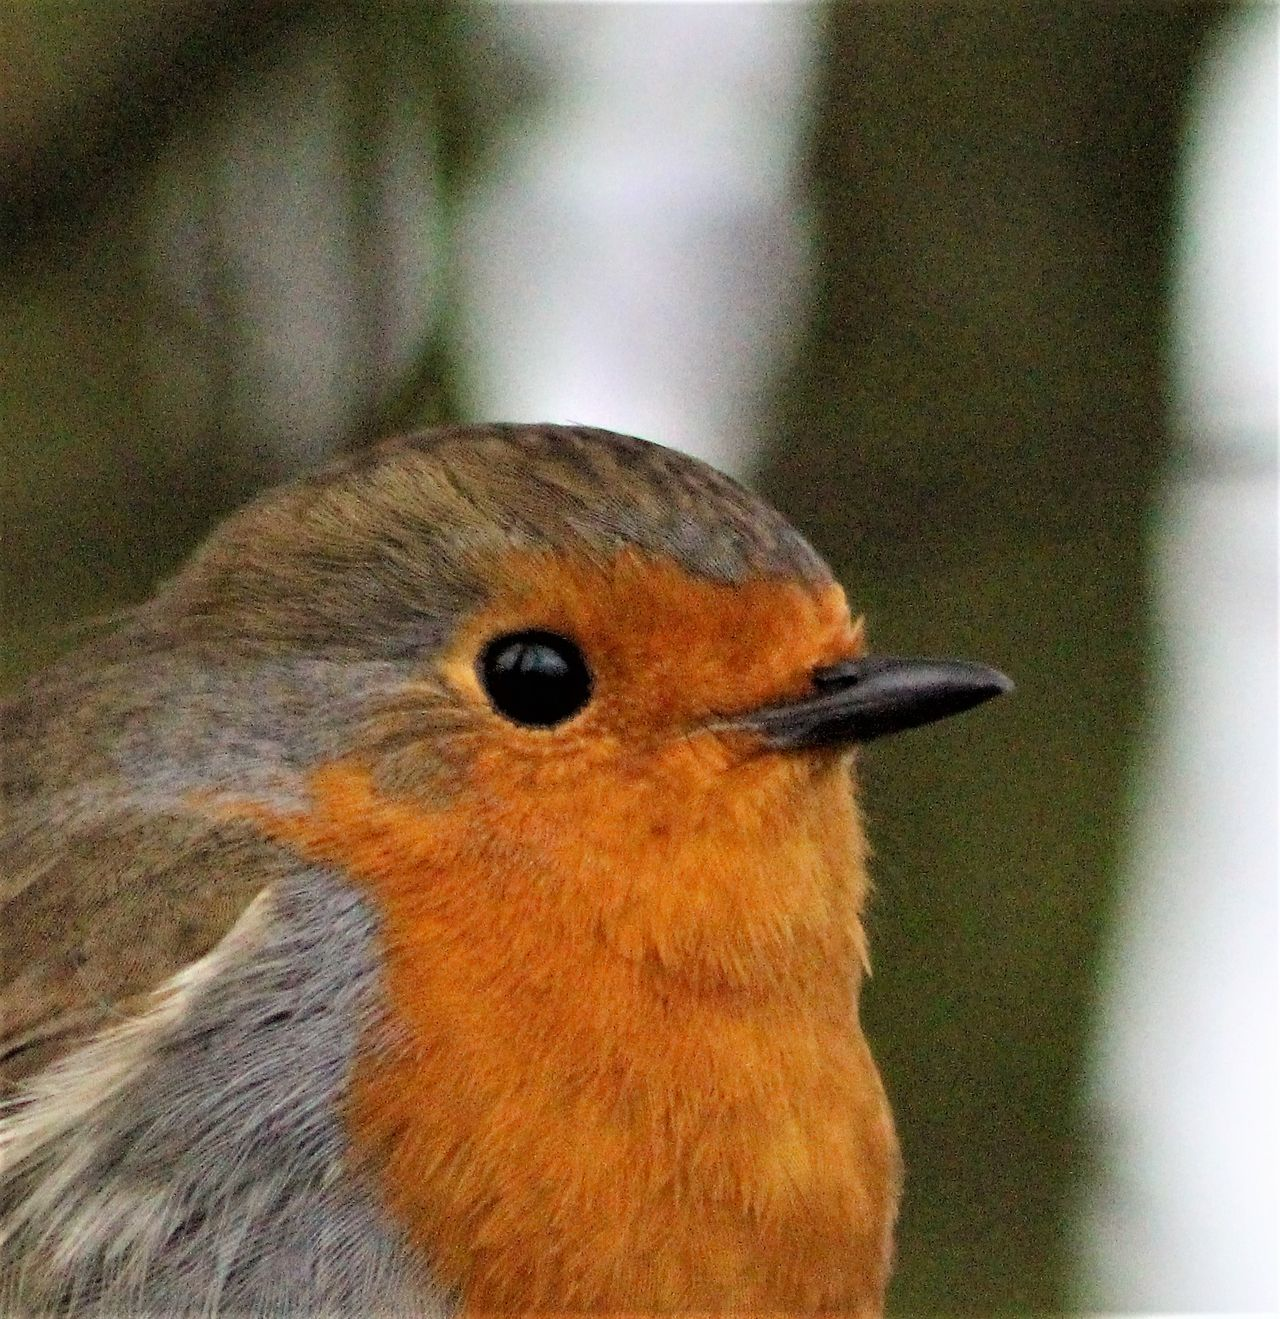 Robin Animal Themes Animal Wildlife Animals In The Wild Bird Close-up Feathers Nature Outdoors Portrait Robin